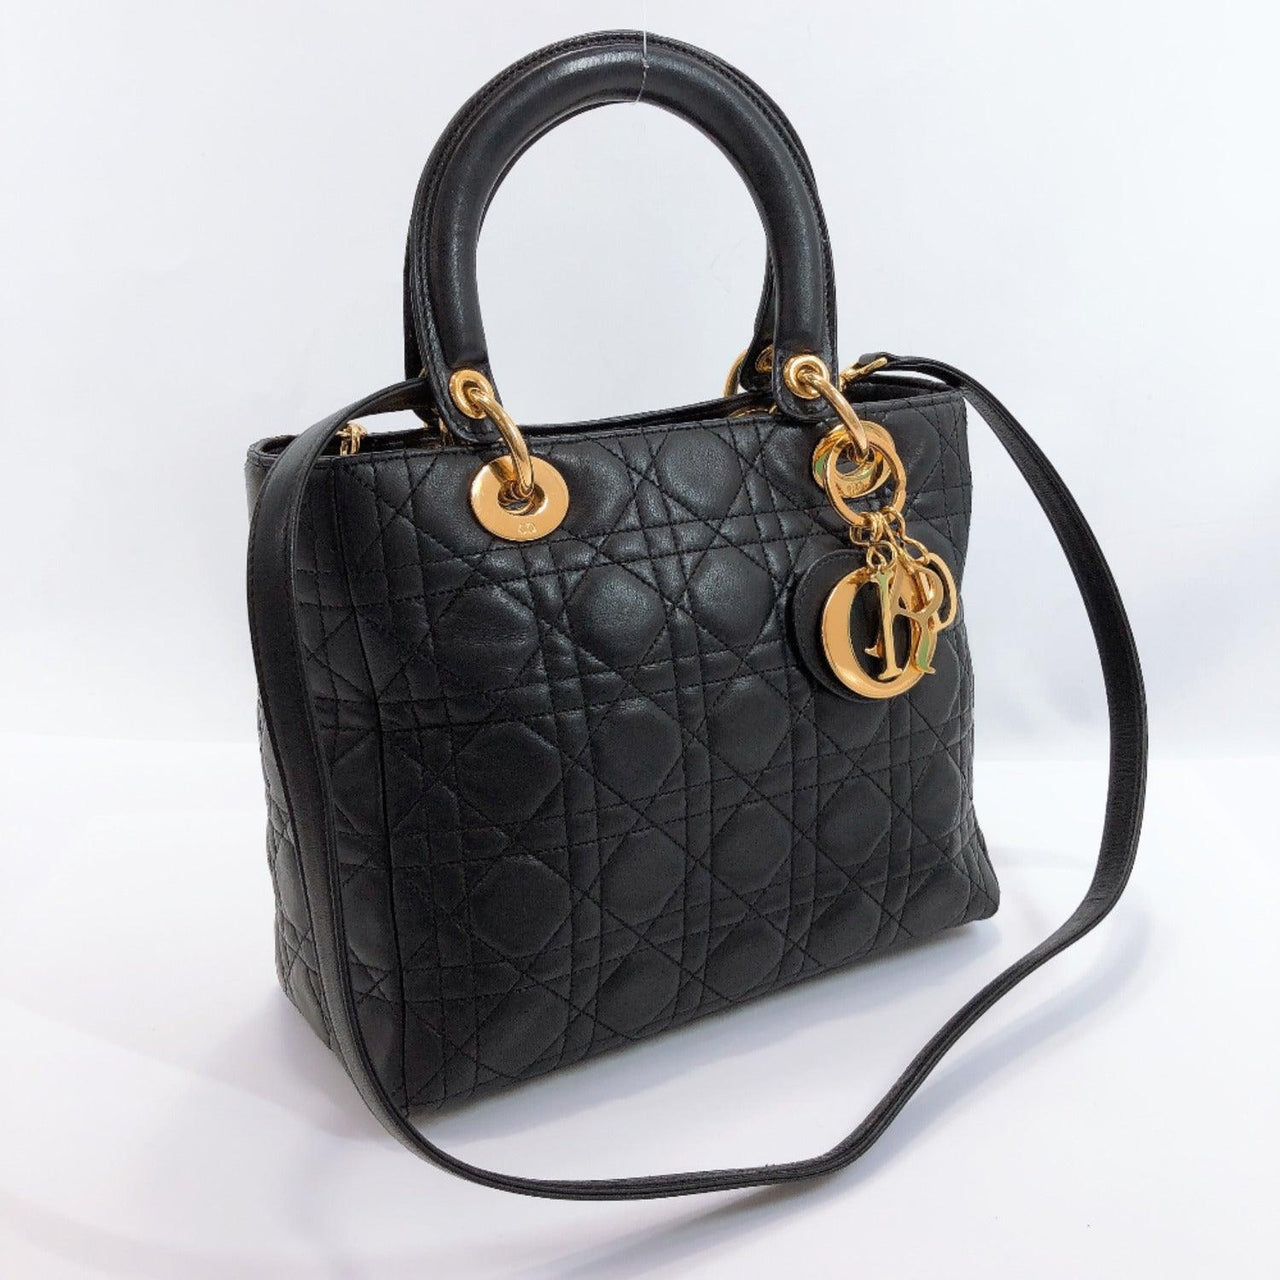 Christian Dior Handbag Lady Dior Canage lambskin black Gold Hardware Women Used